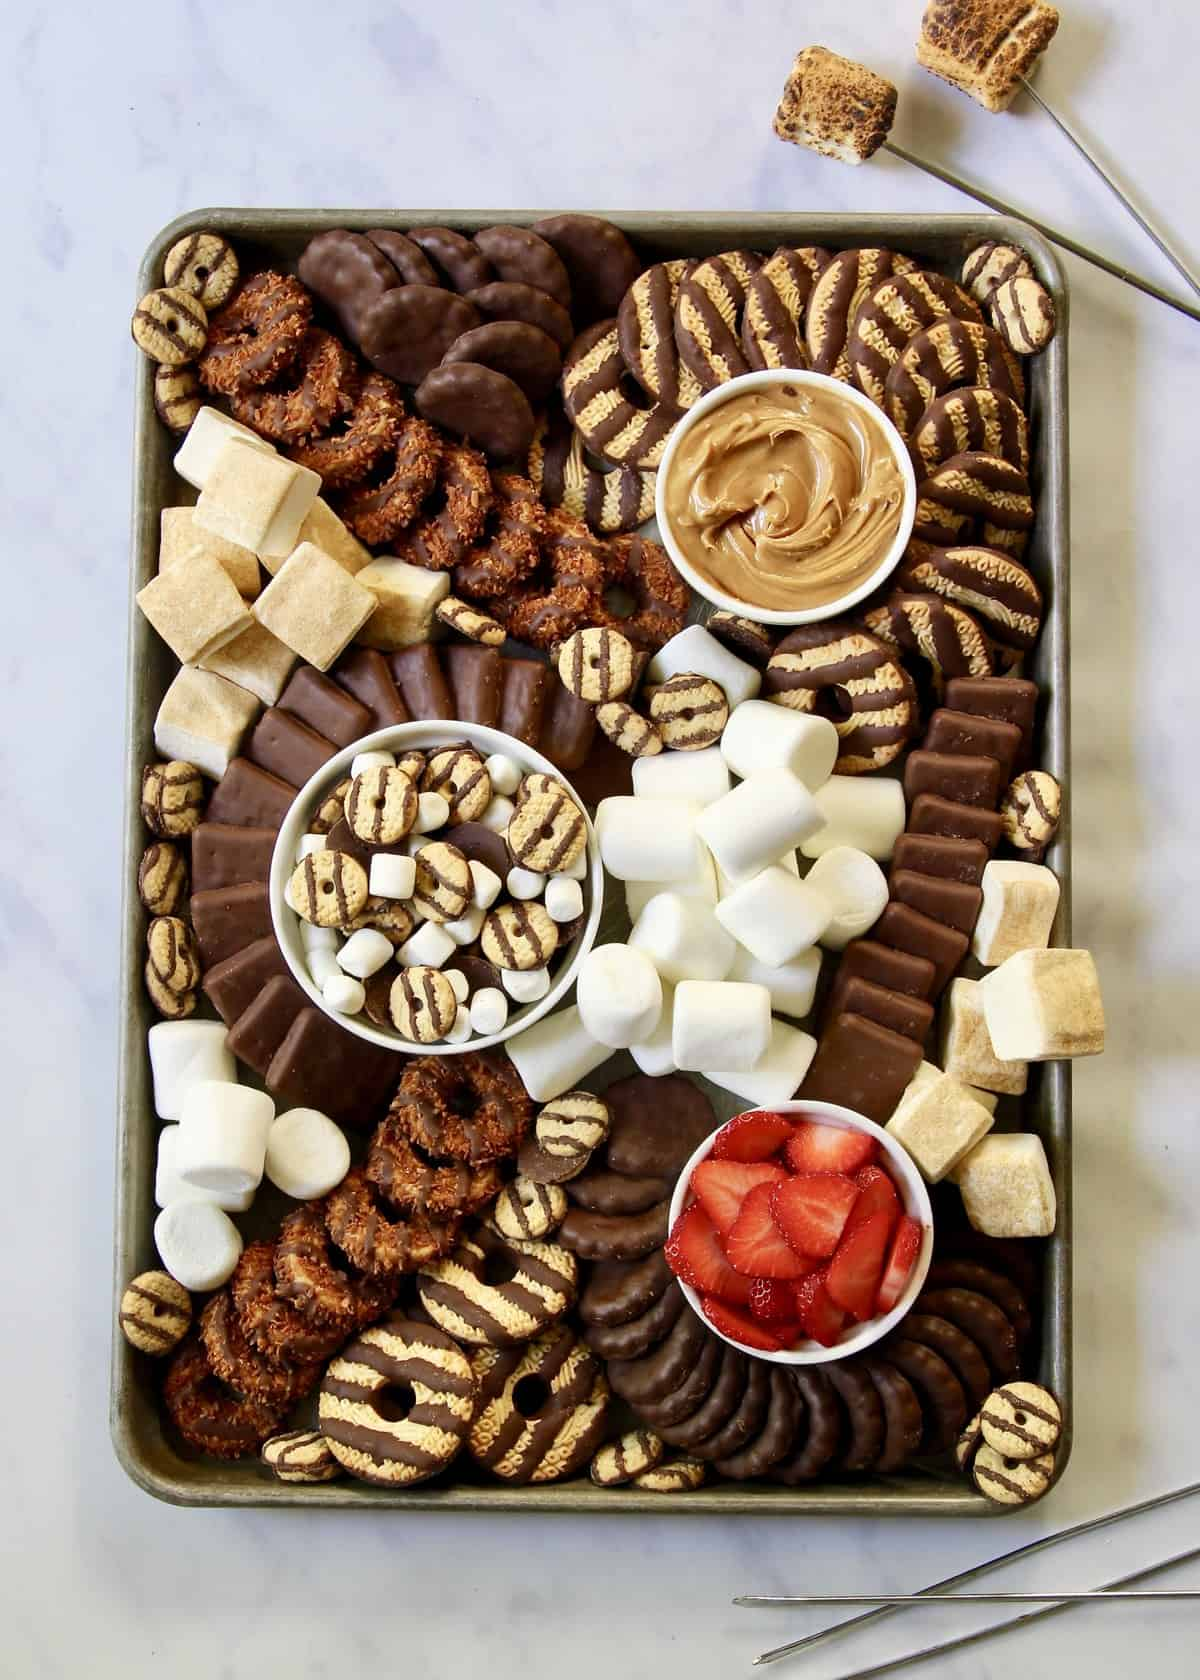 Keebler Cookies S'mores Tray by The BakerMama